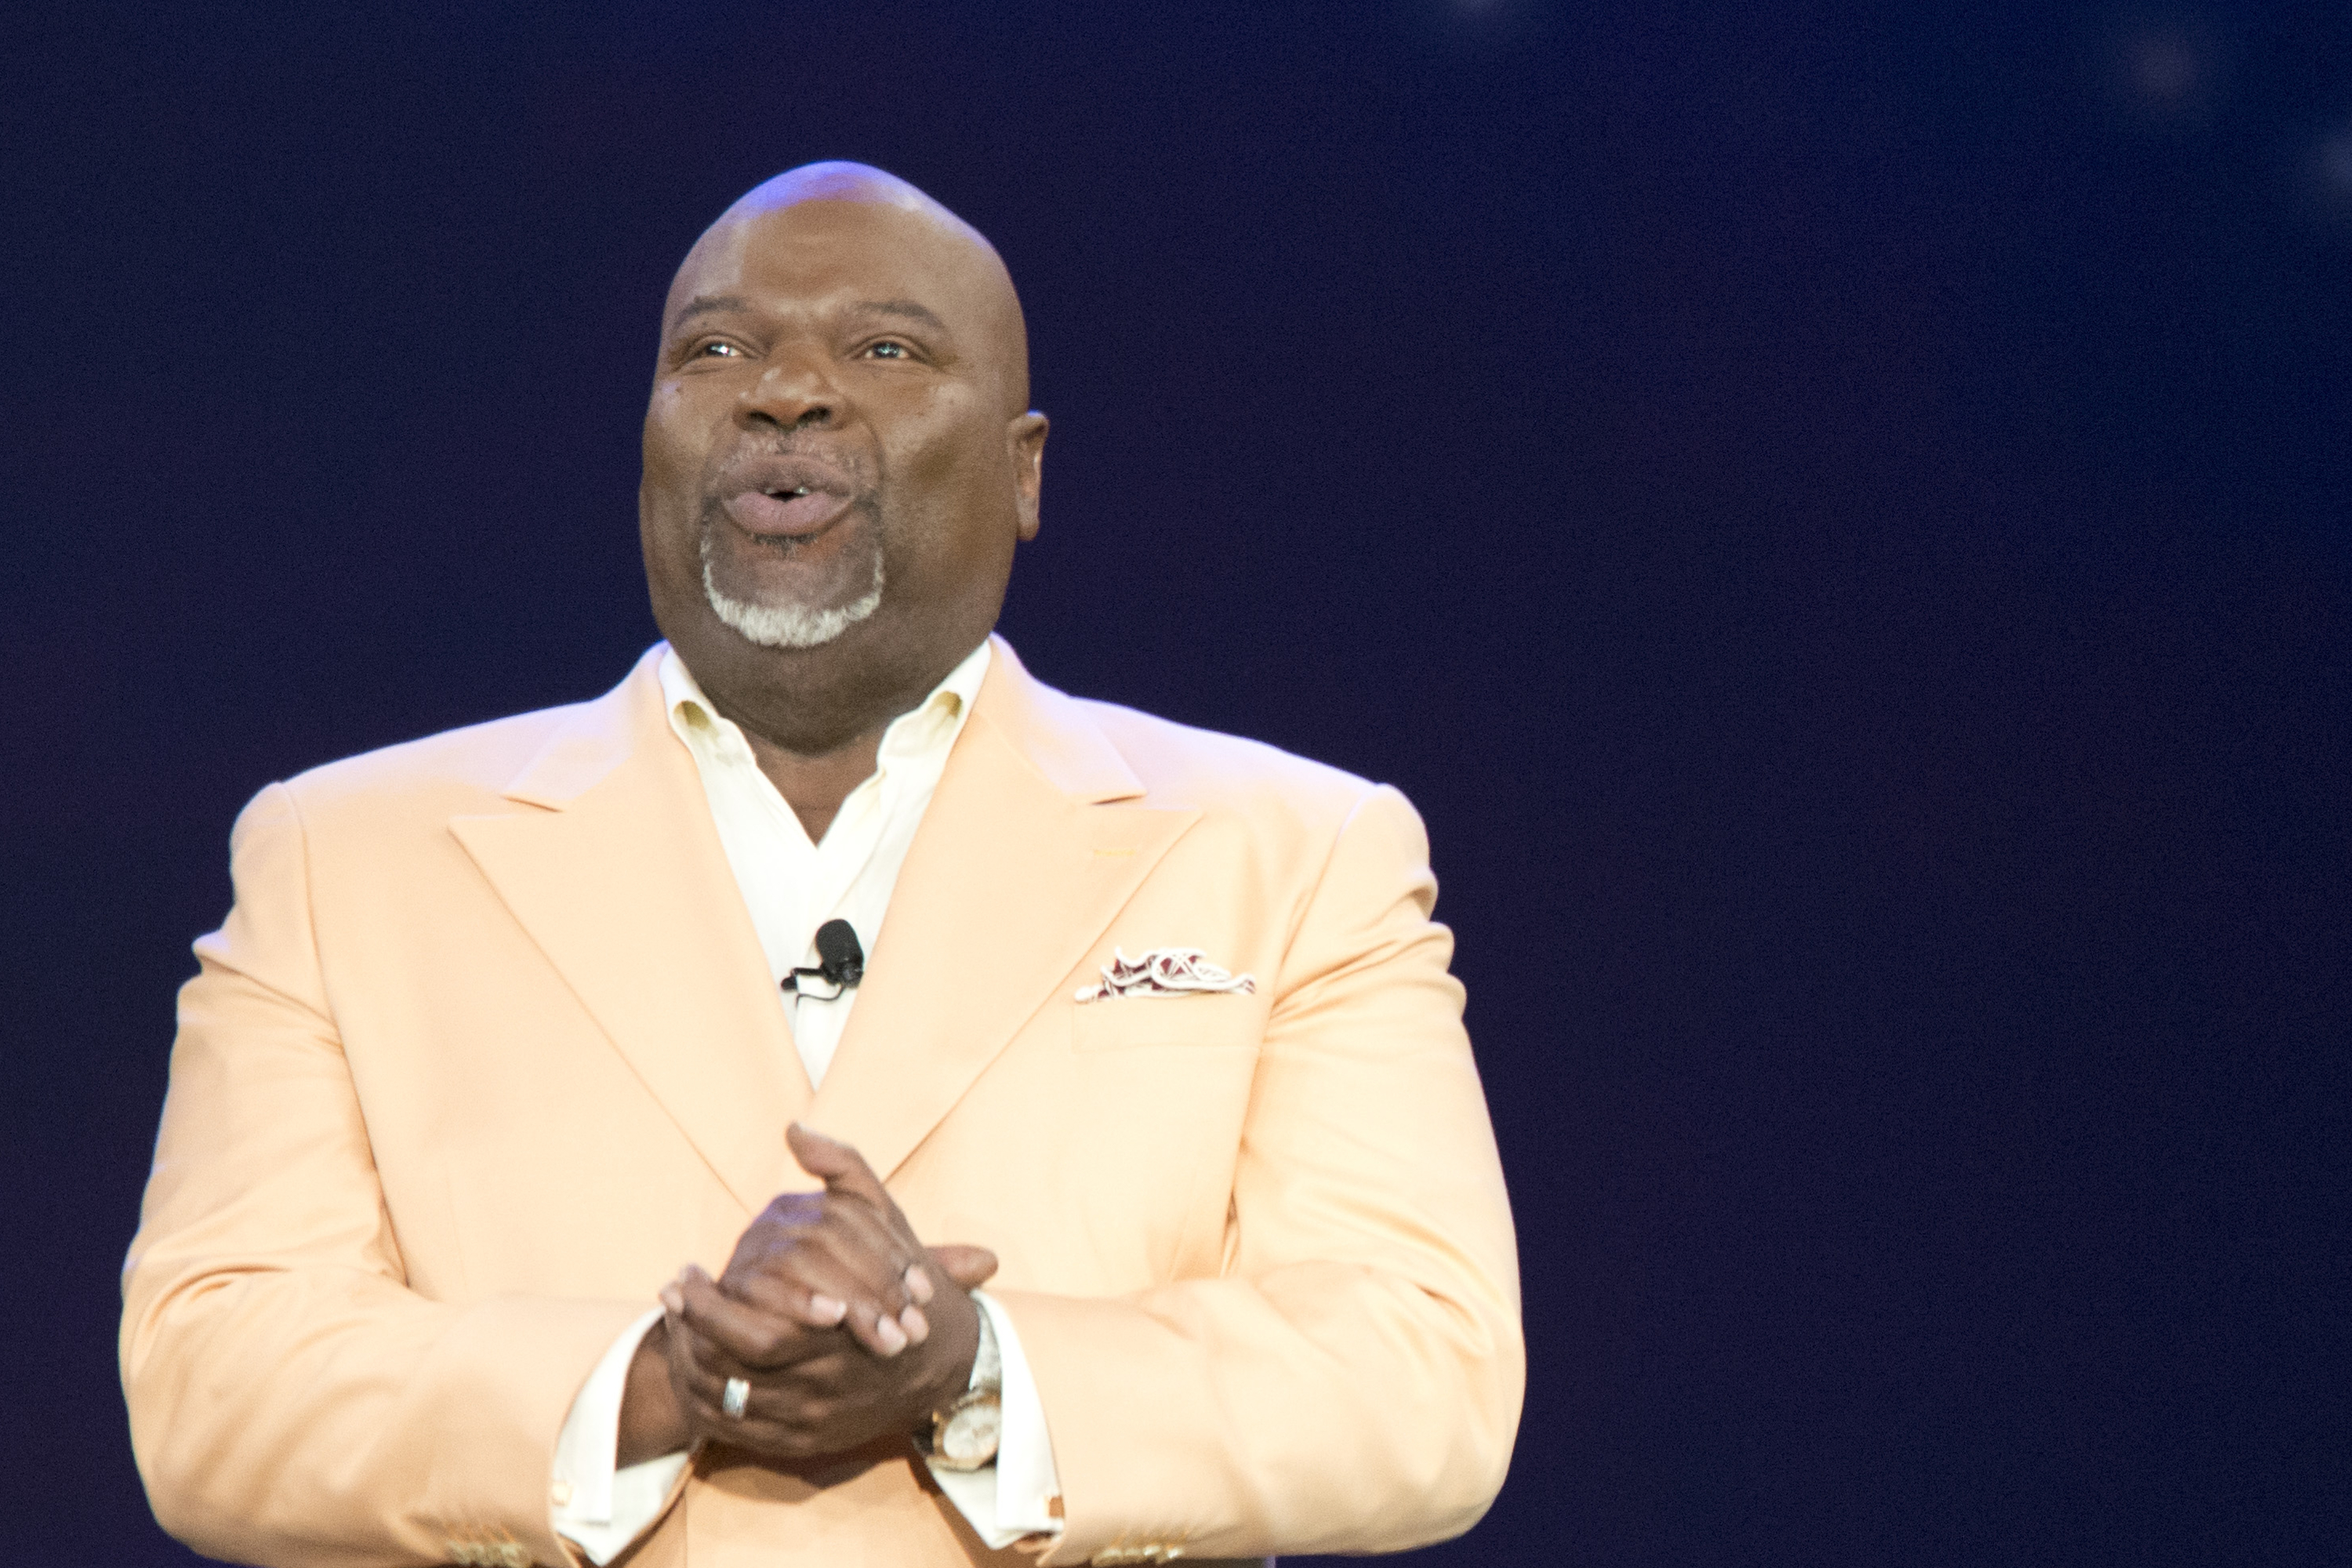 Bishop T.D. Jakes To Bring Multi-Day Conference To Atlanta